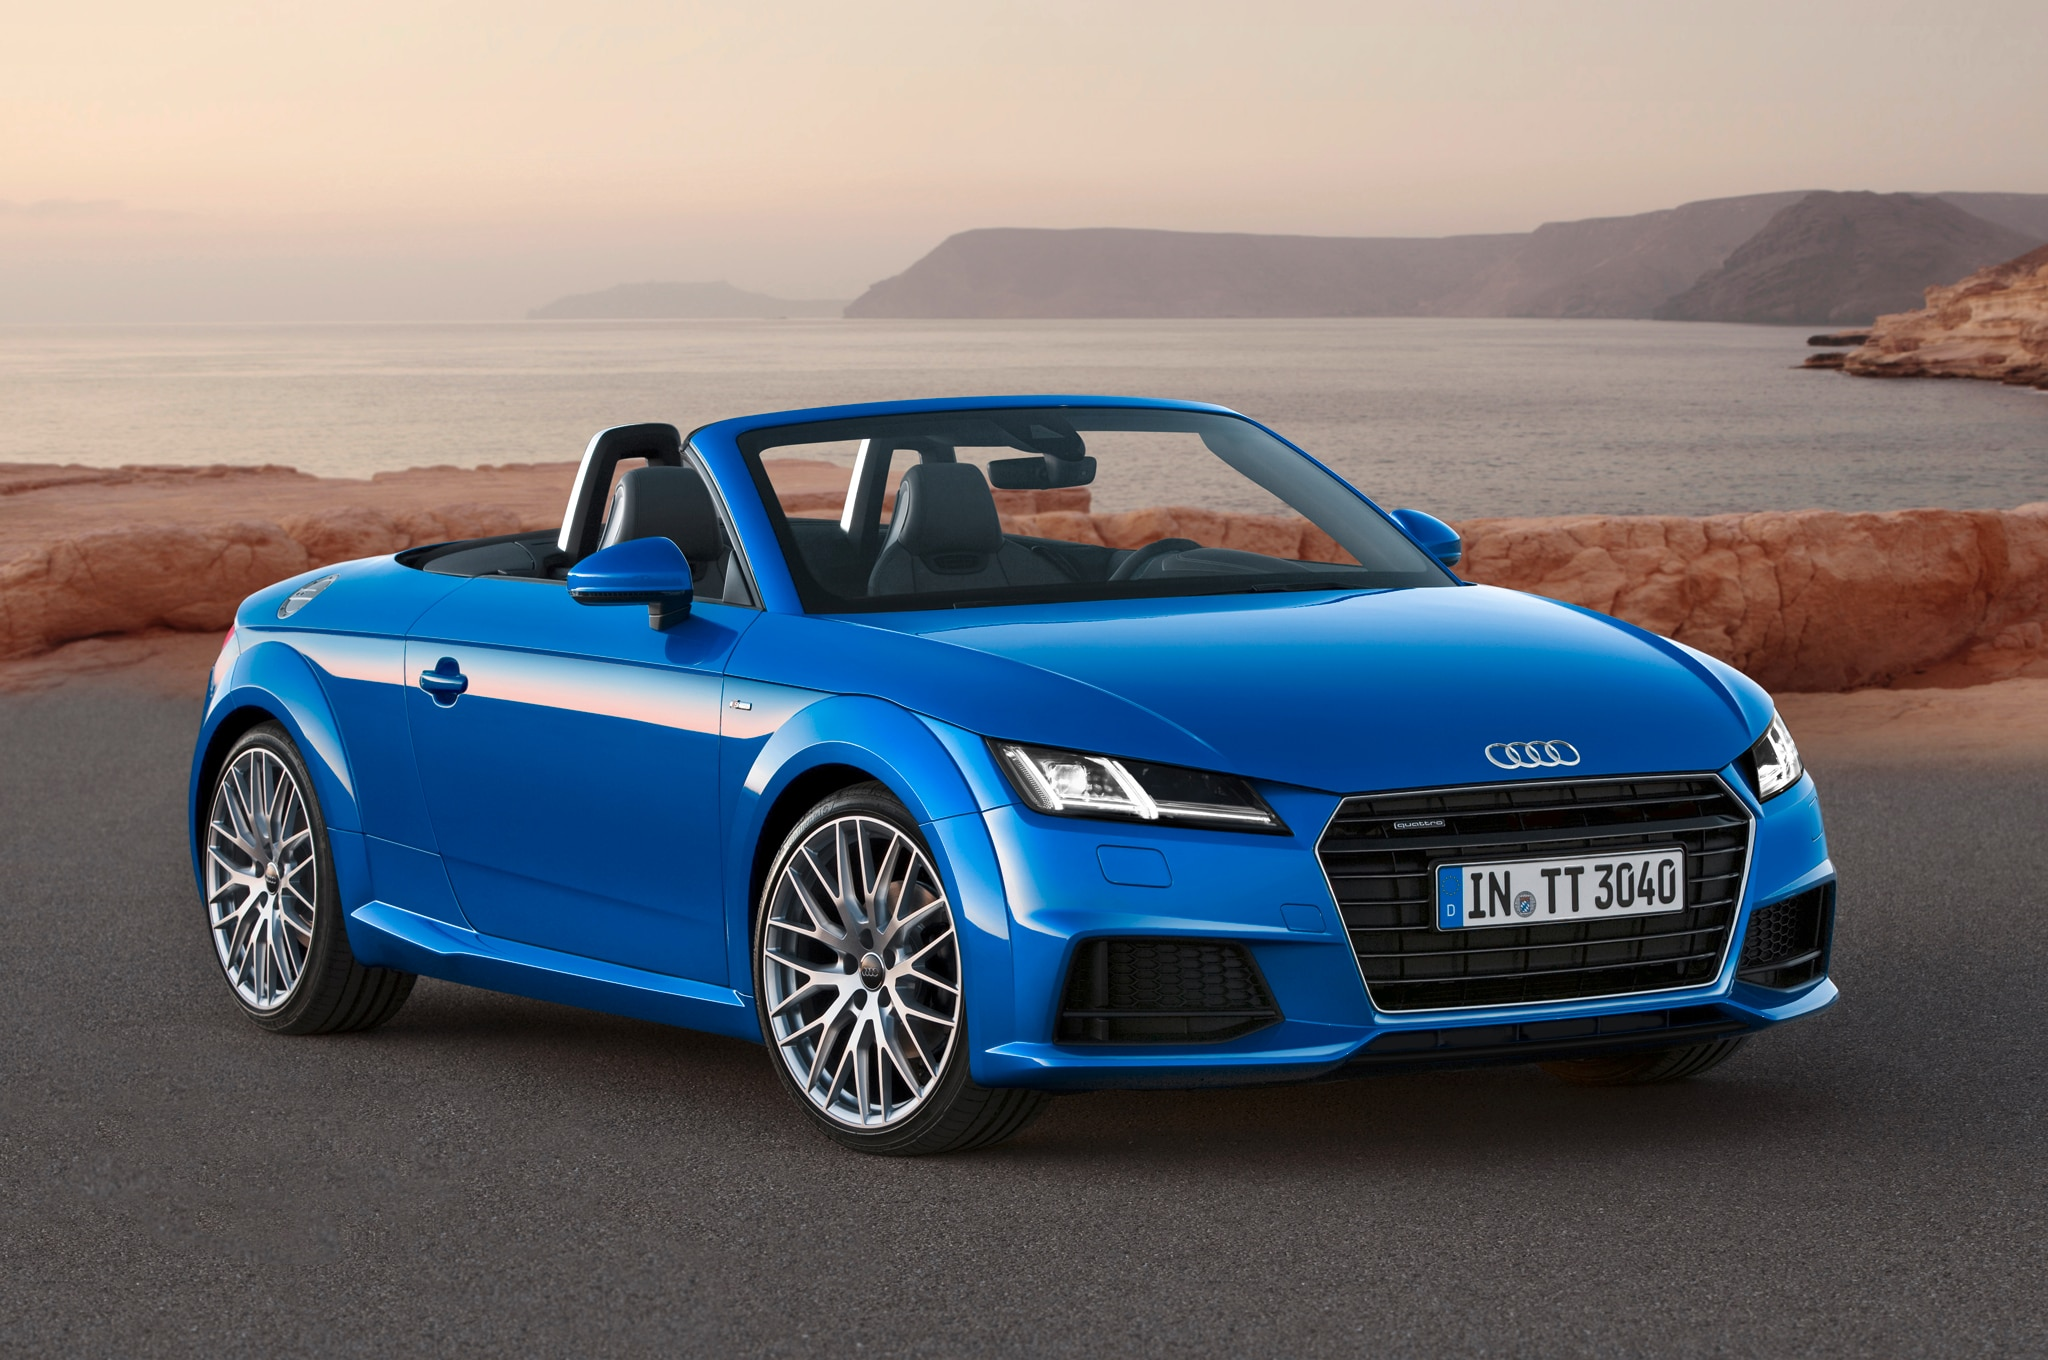 2016 Audi TT/TTS Roadster Review